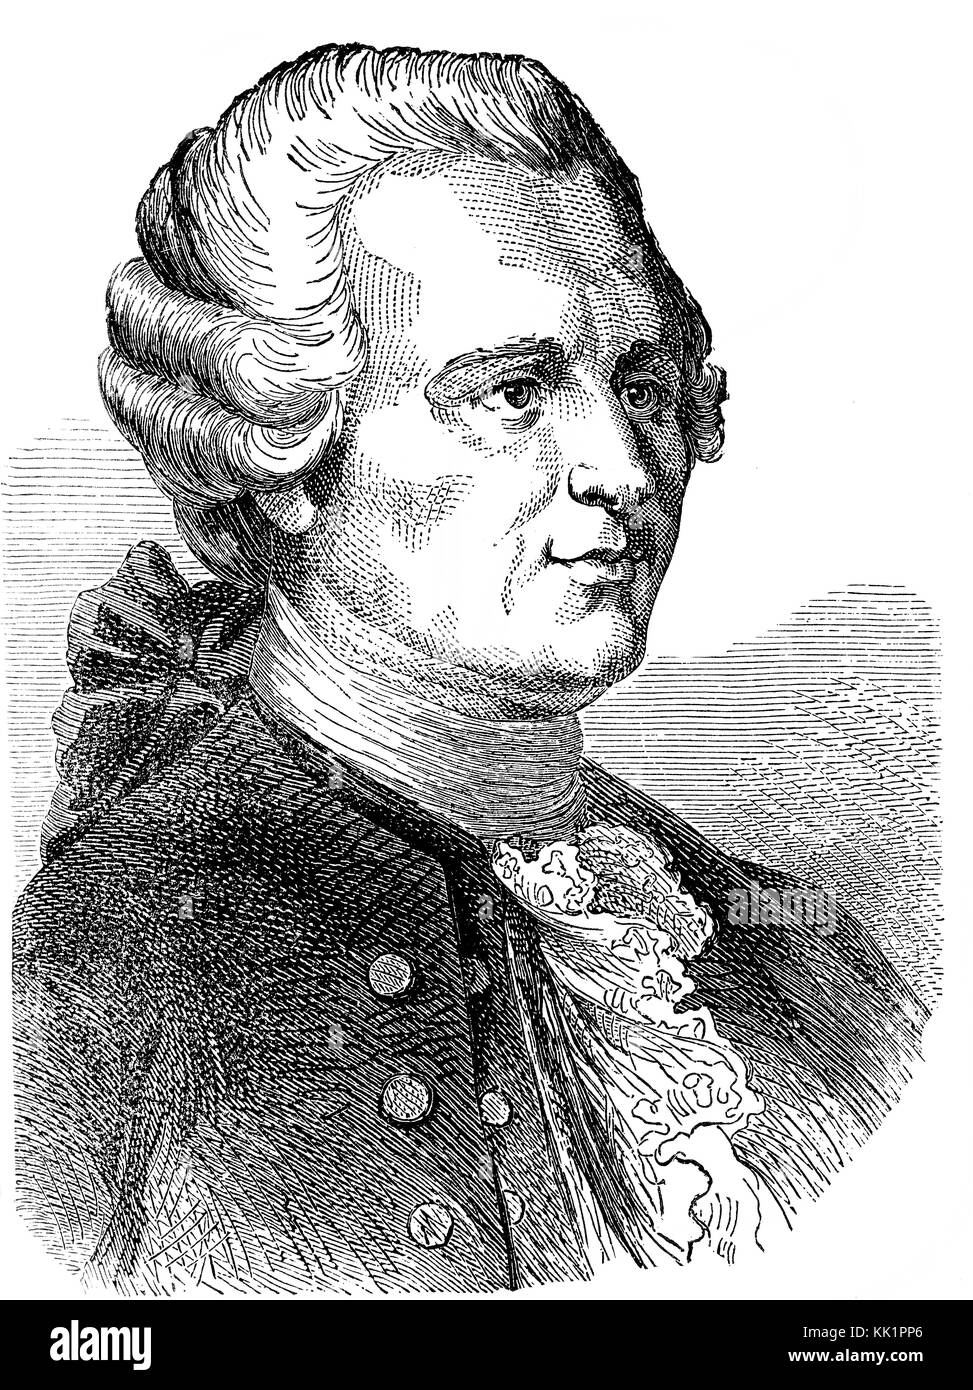 Jean-Baptiste le Rond d'Alembert, 1717-1783, a French mathematician, mechanician, physicist, philosopher - Stock Image